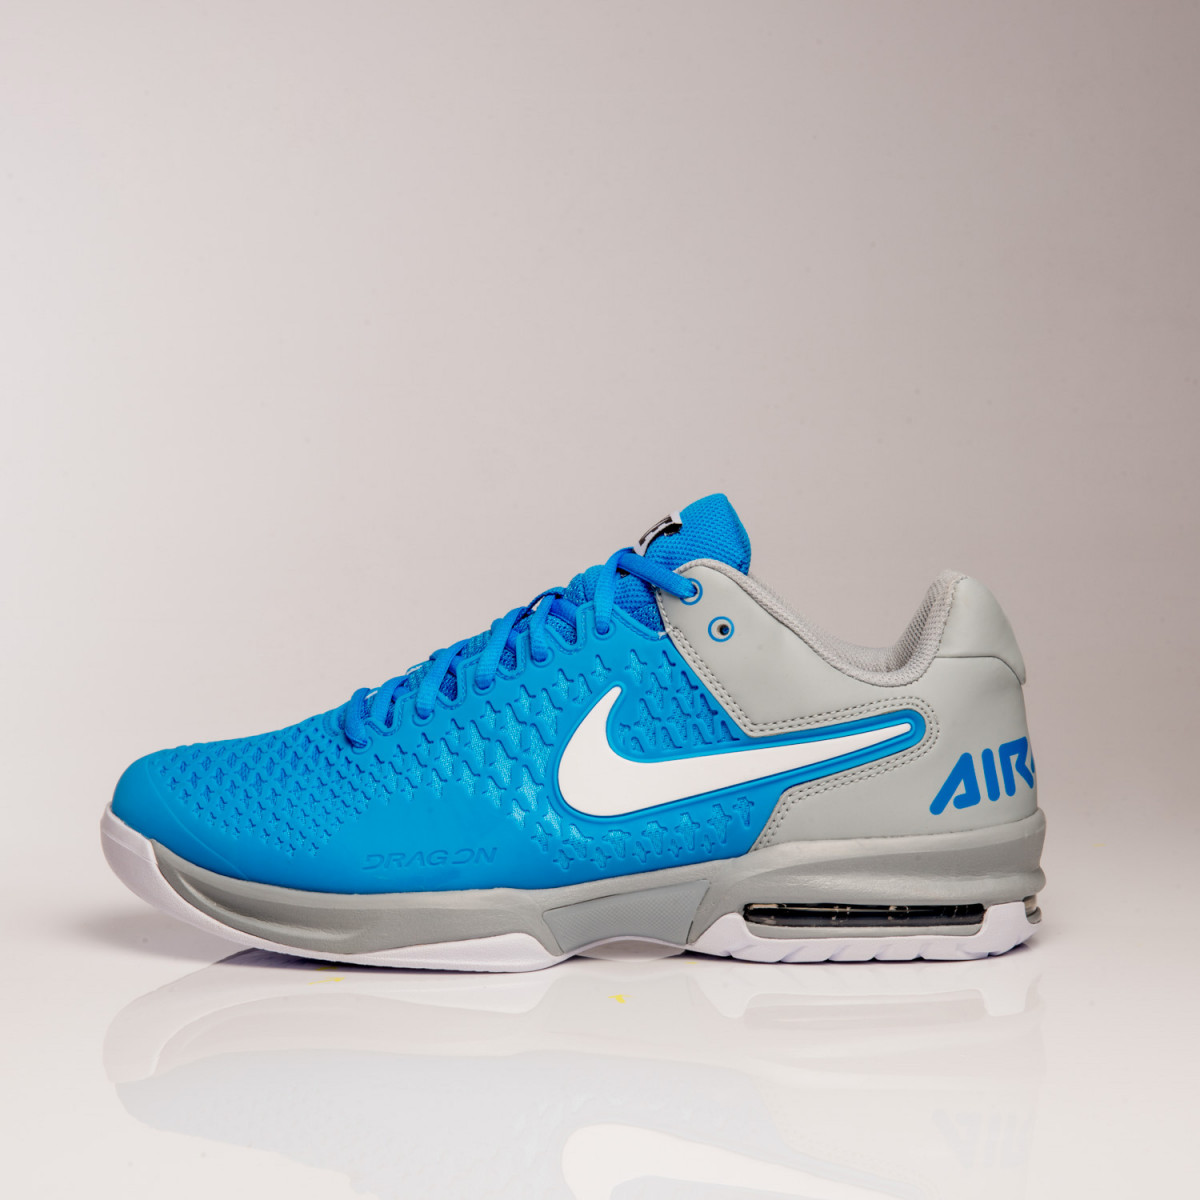 Zapatillas Nike Air Cage Pht